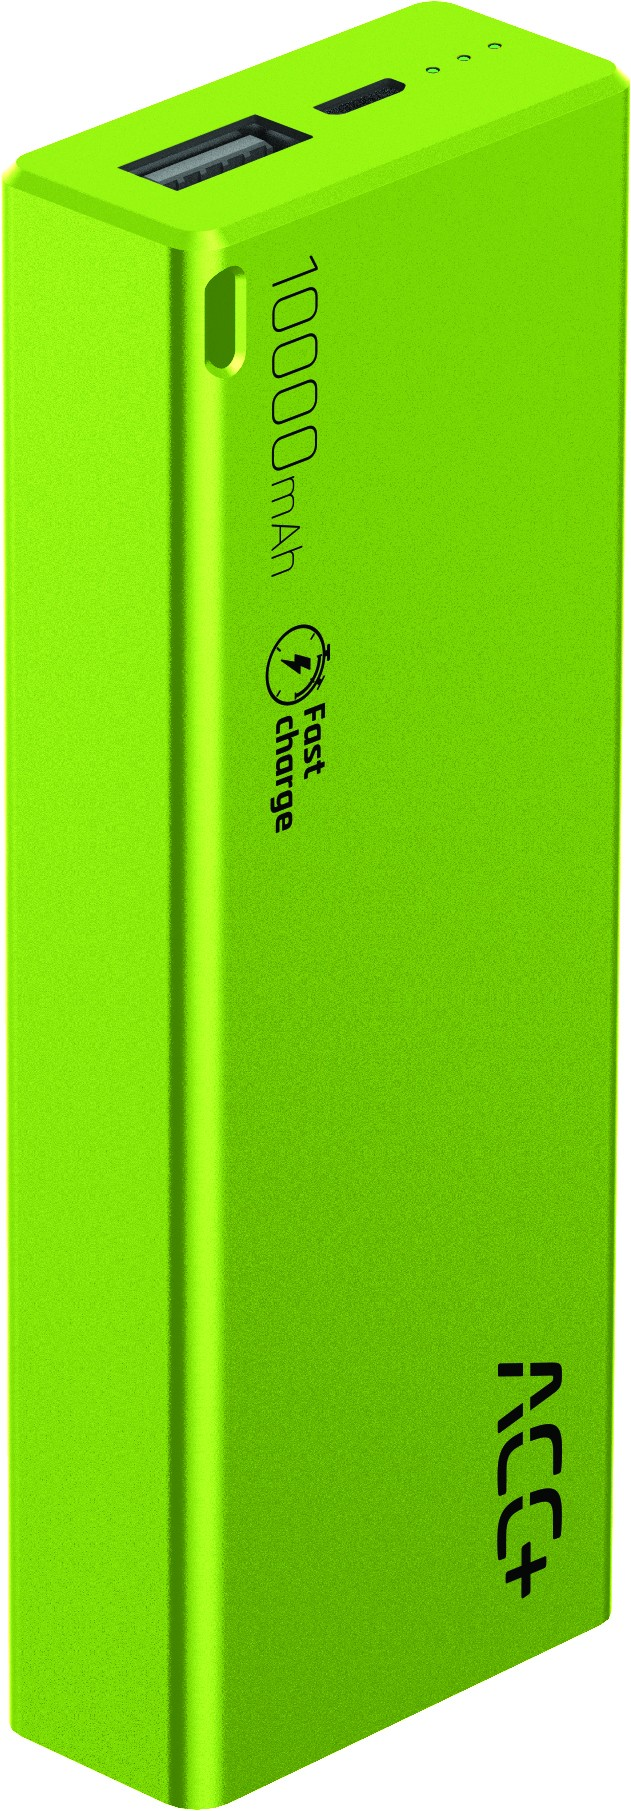 Power Bank ACC+ THIN 10000 mAh z systemem Fast Charge Zielony-img-2903